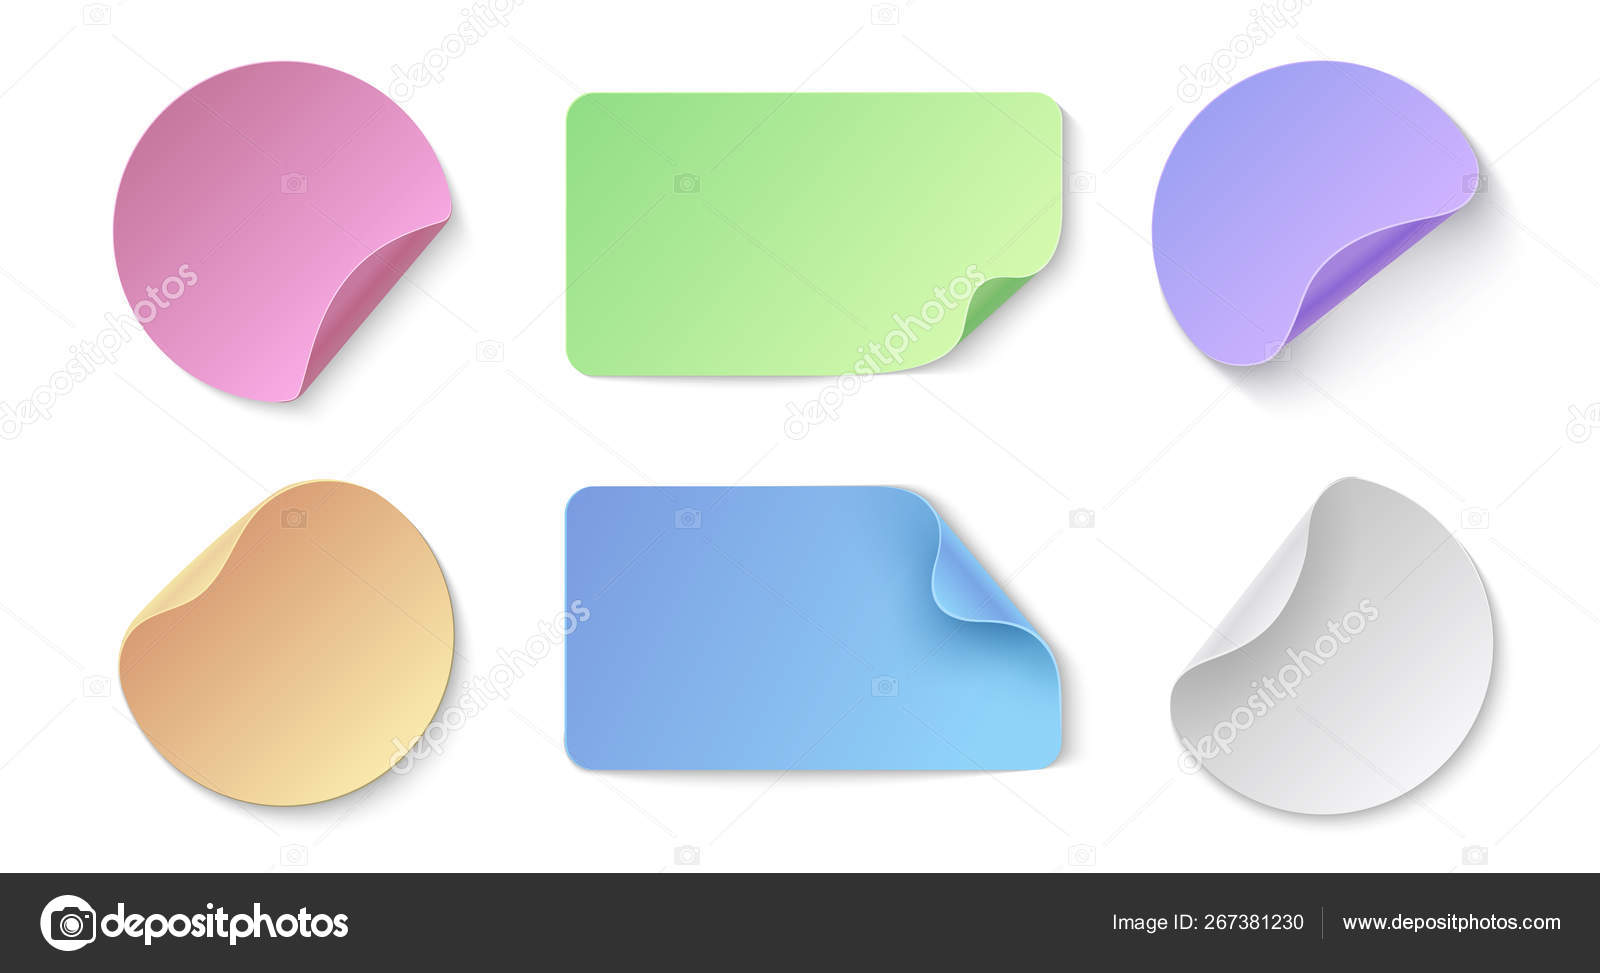 Realistic paper stickers  Round and rectangular colored